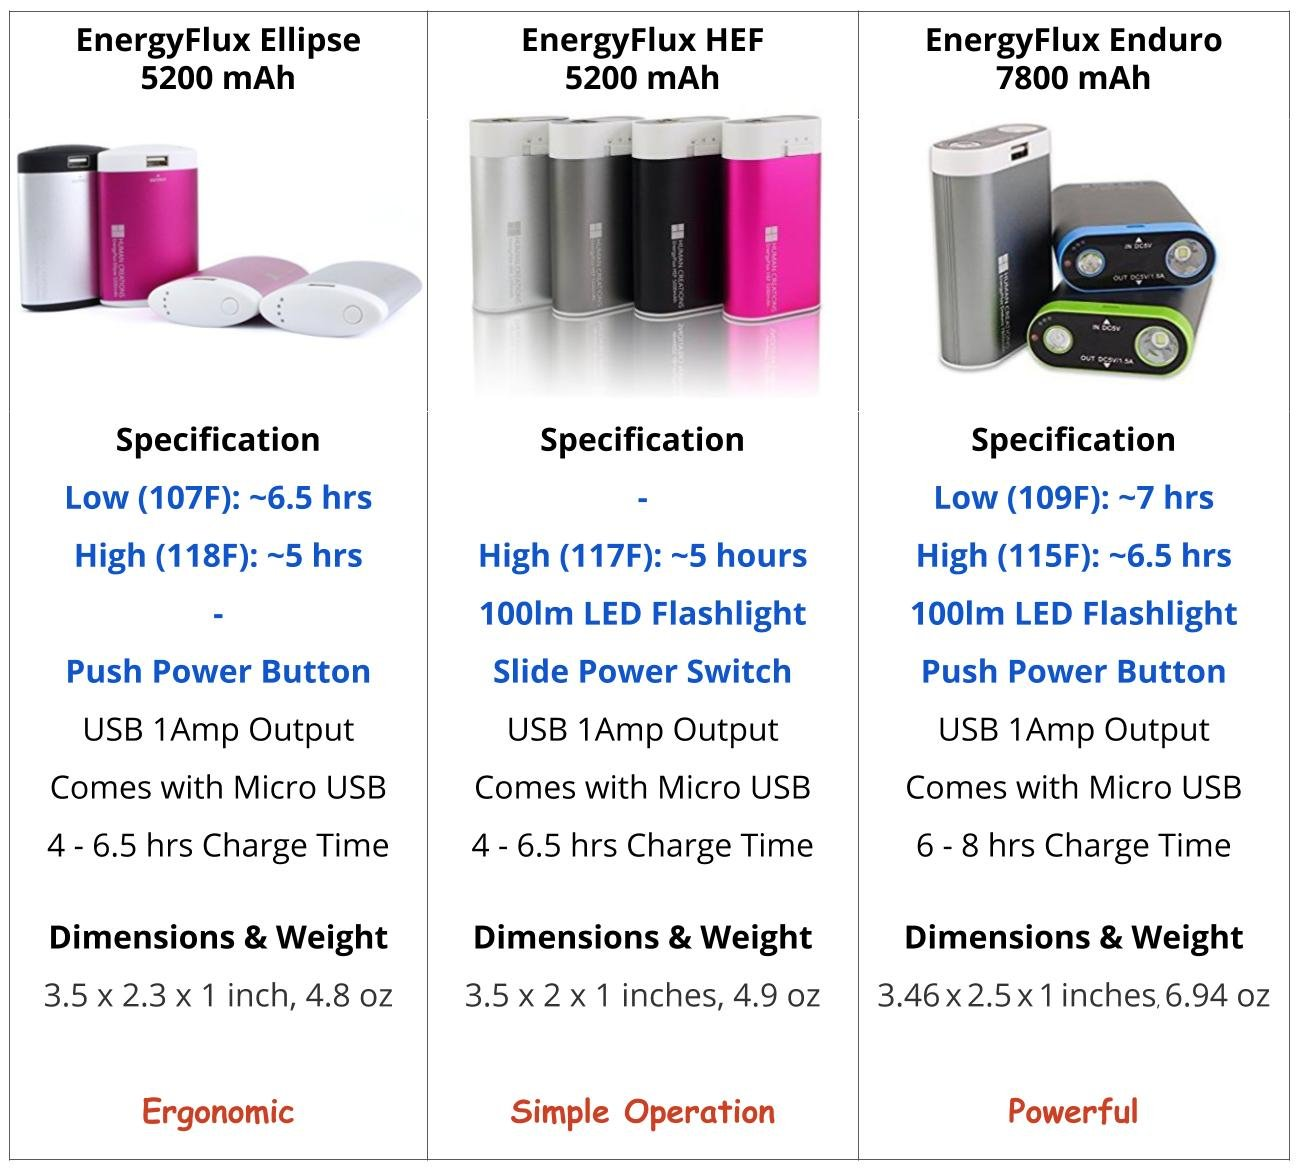 Human Creations EnergyFlux Ellipse 5200mAh Rechargeable Wrap-Around Hand Warmer/USB External Battery Pack - Electronic USB Hand Warmer with Power Bank Pocket Warmer (Cherry Pink) by Human Creations